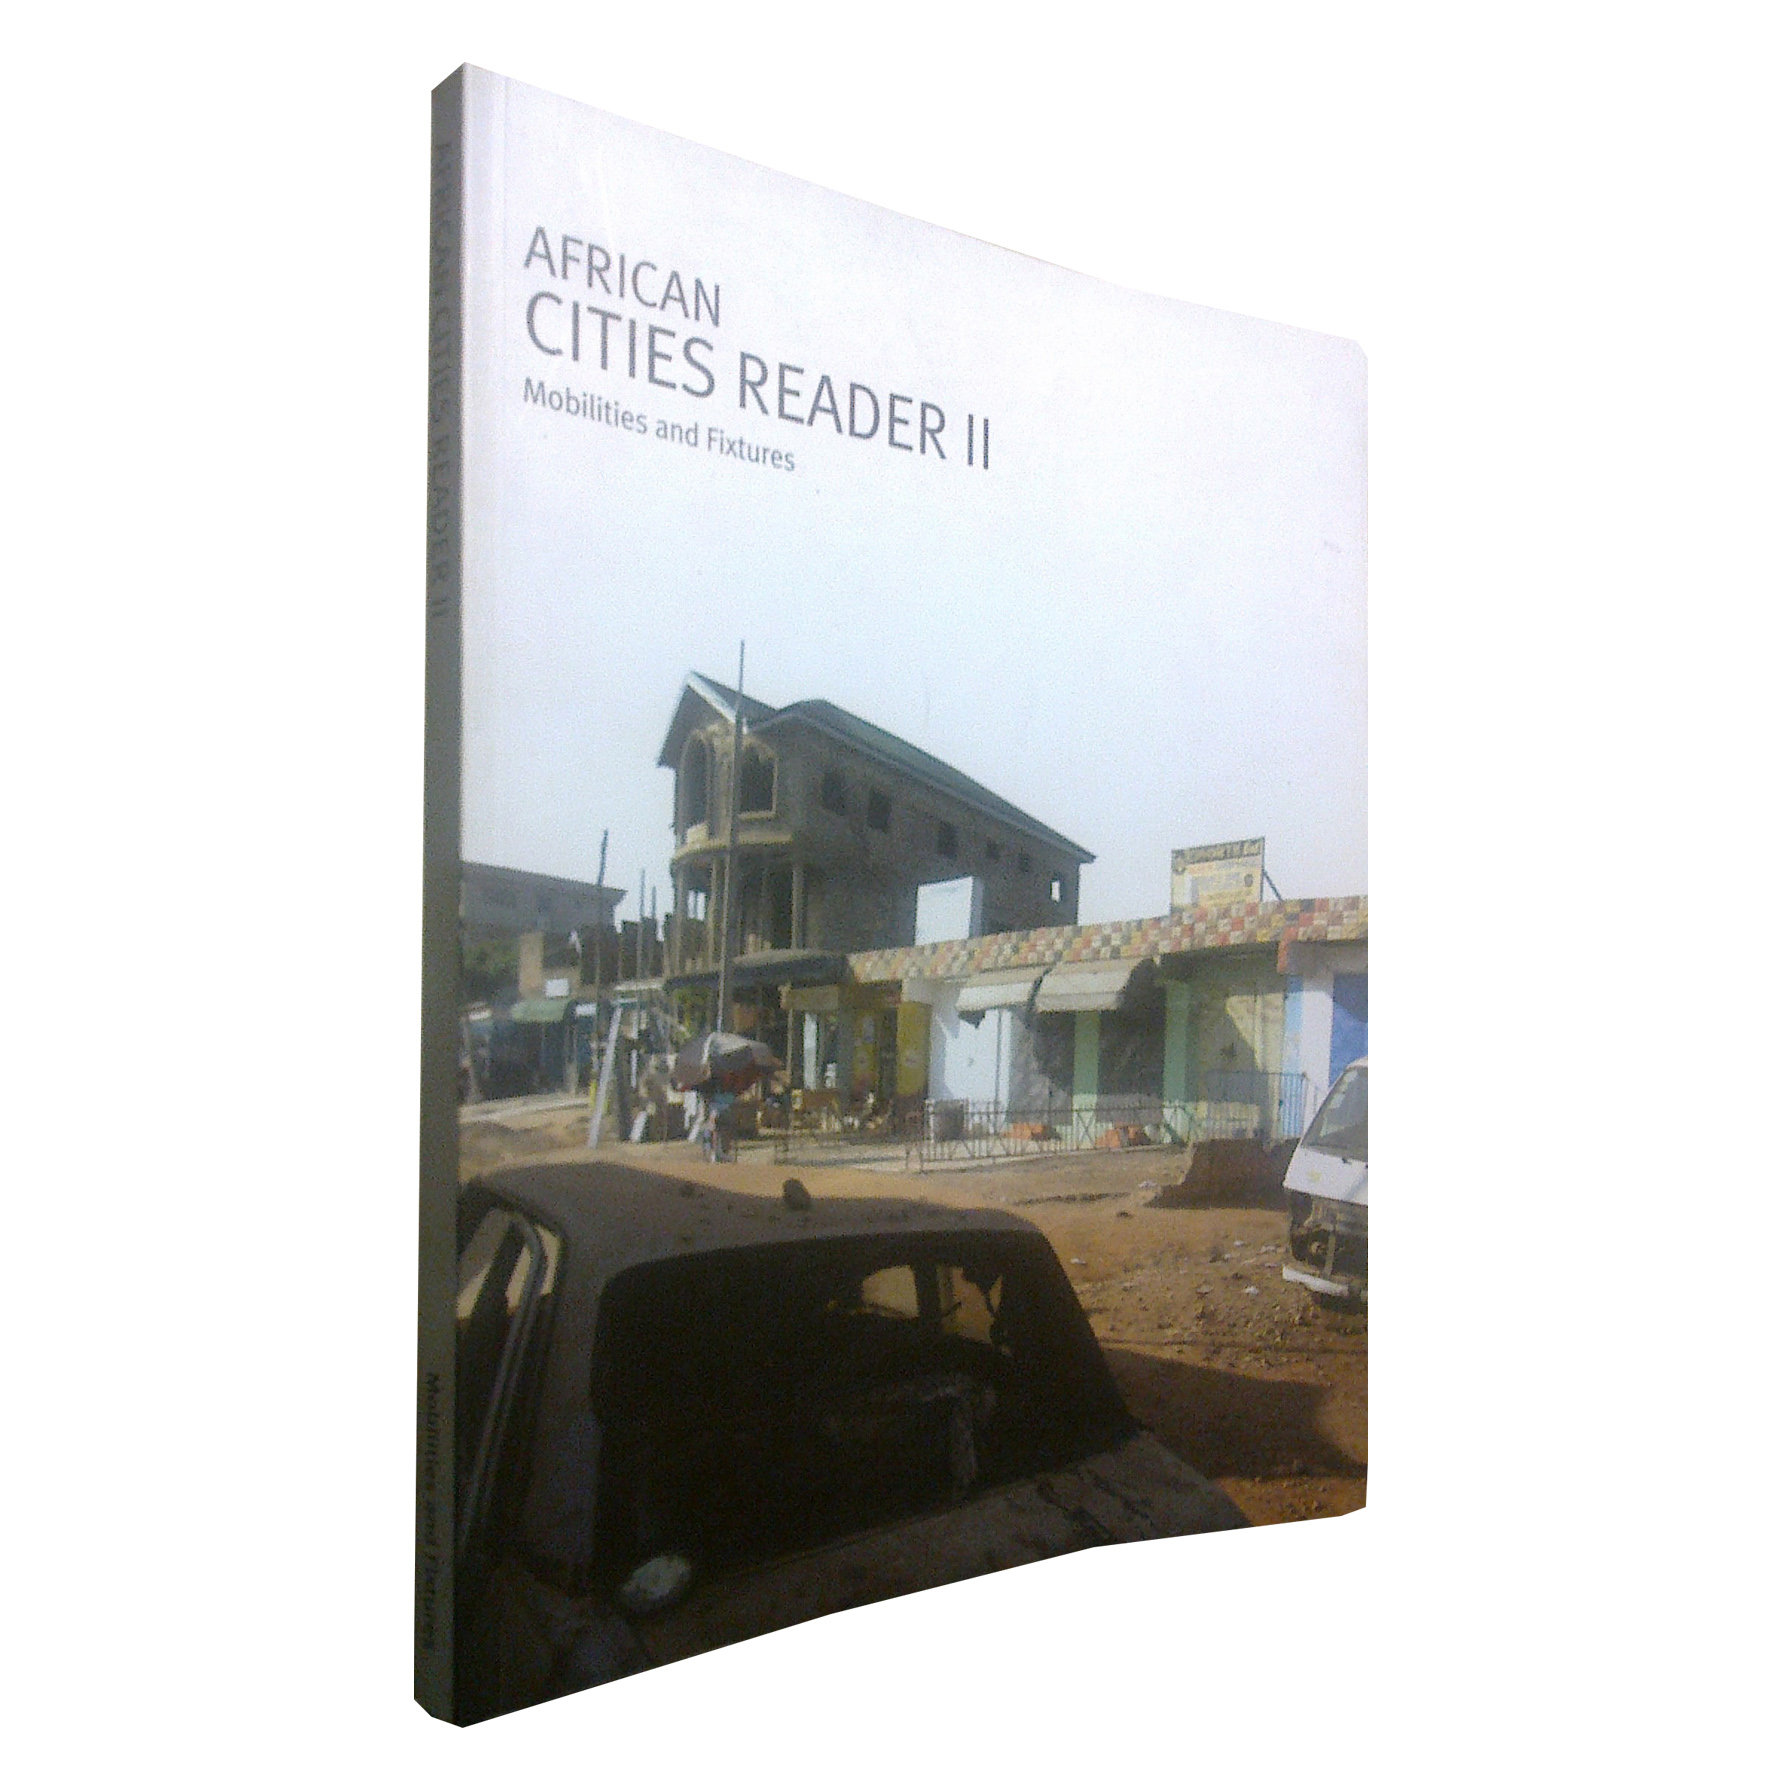 African Cities Reader 2: Mobilities & Fixtures (May 2011) ACR2